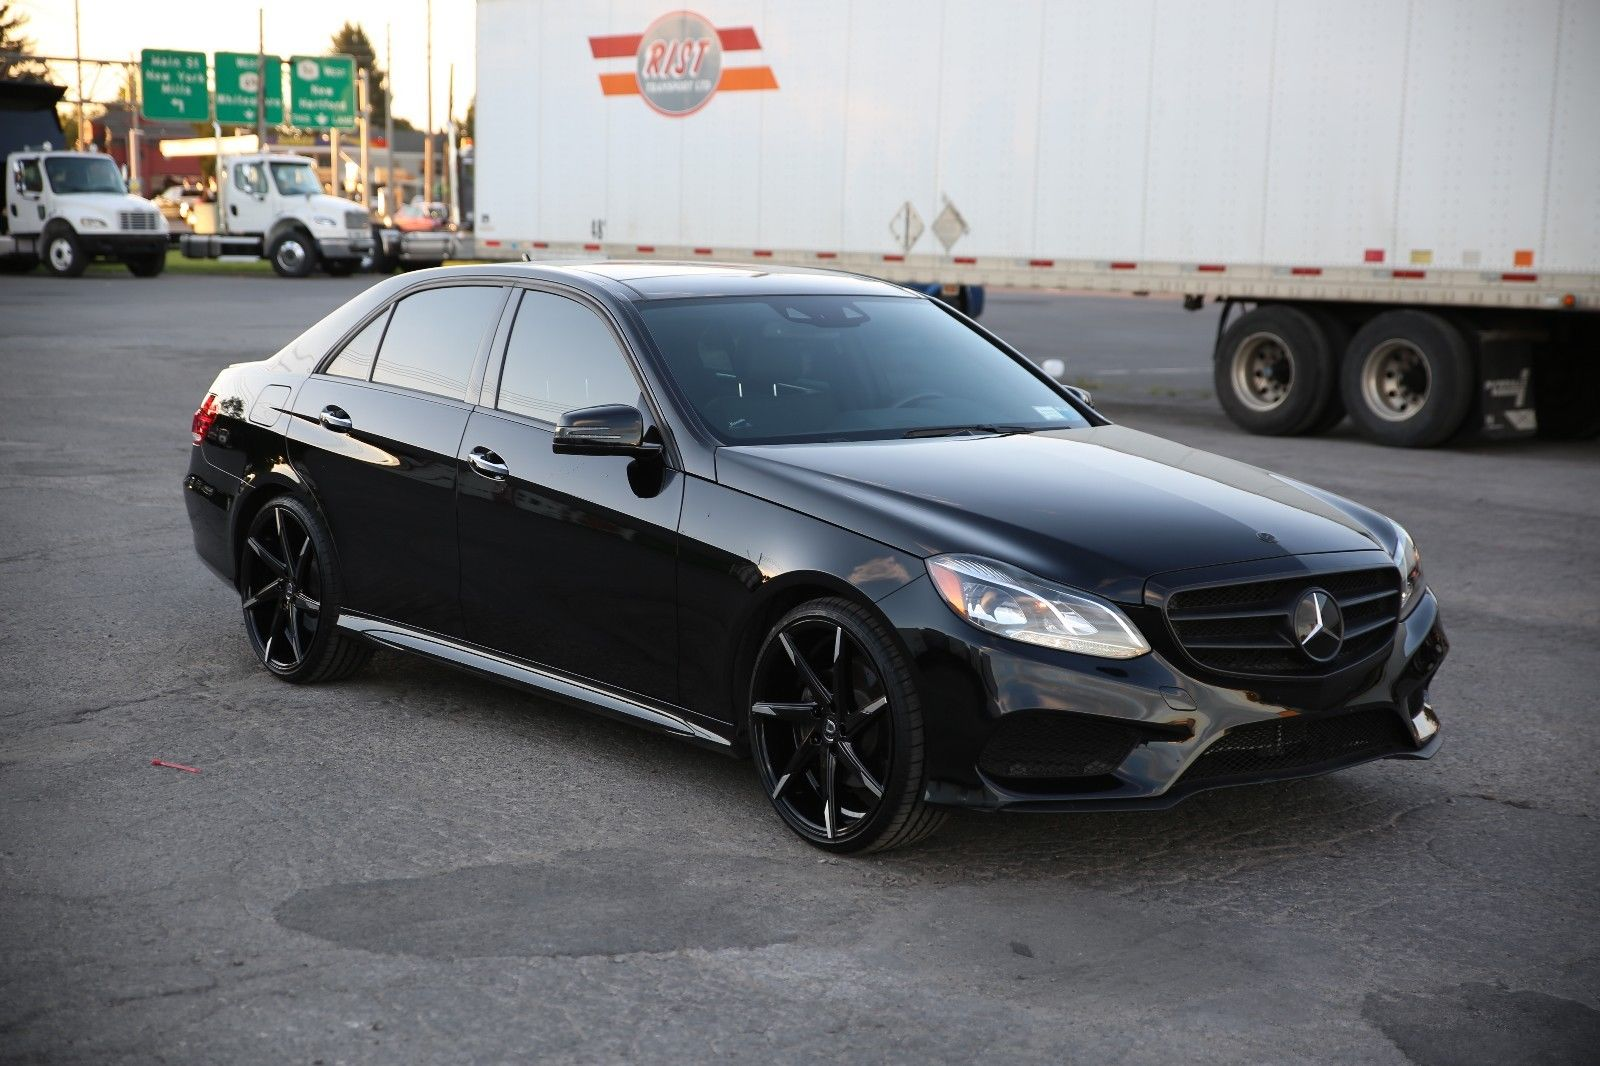 2014 mercedes benz w212 facelift e350 black on black. Black Bedroom Furniture Sets. Home Design Ideas